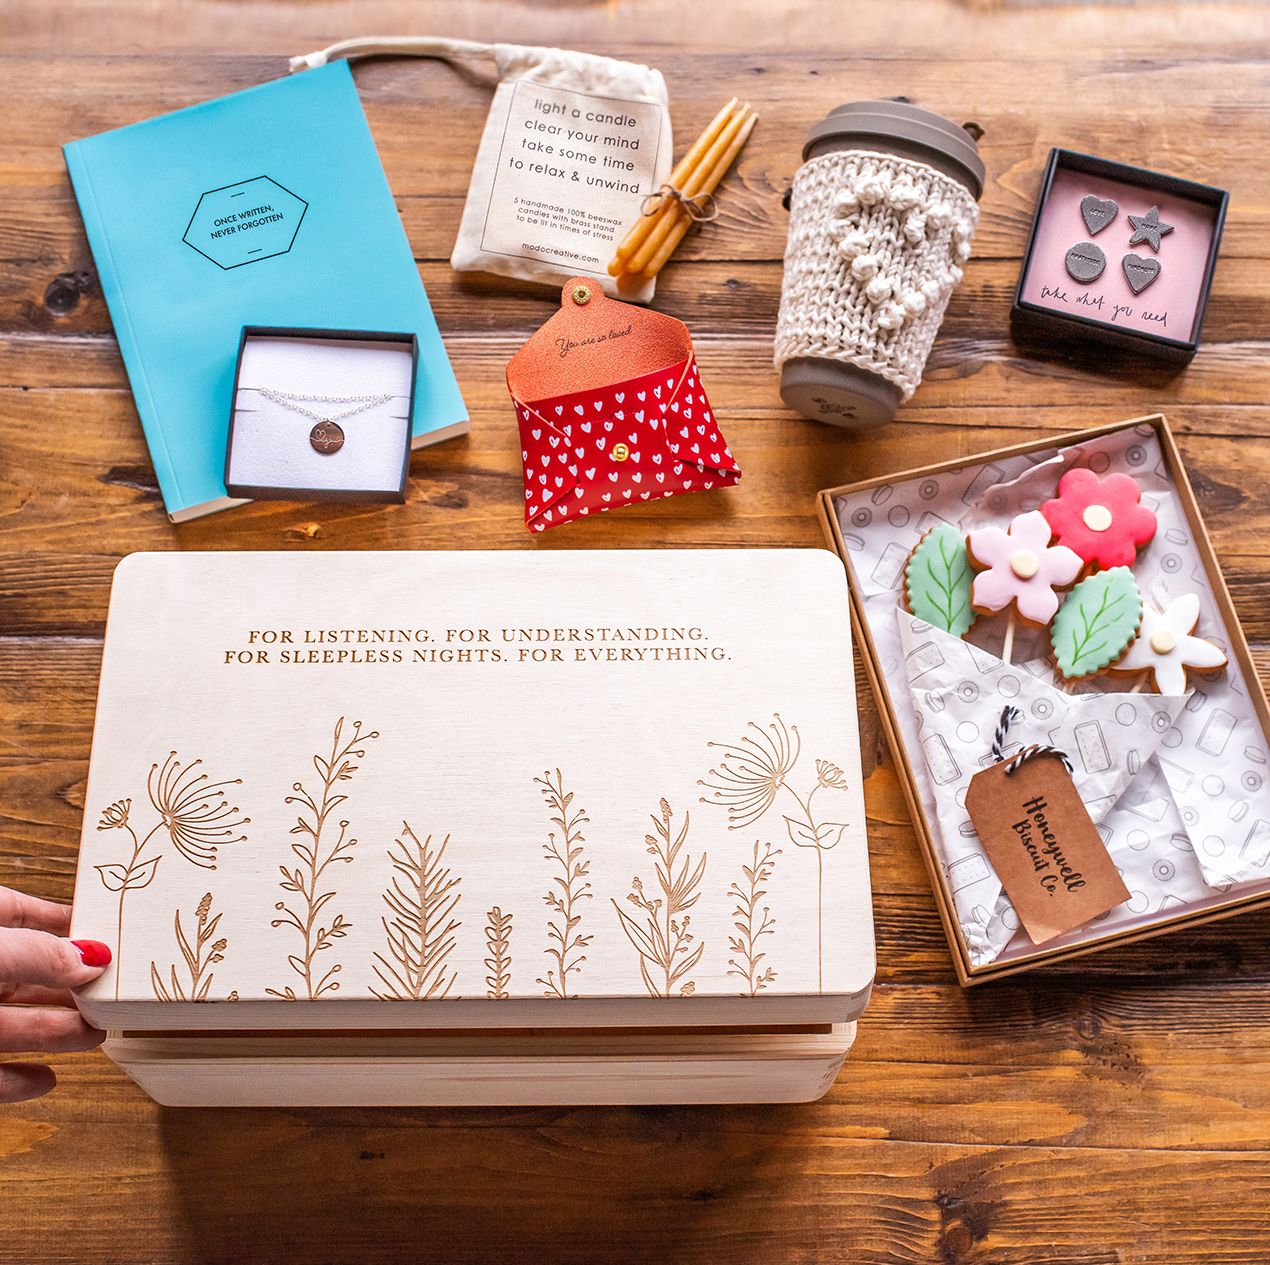 Notonthehighstreet launches 'the most thoughtful gift' for Mother's Day